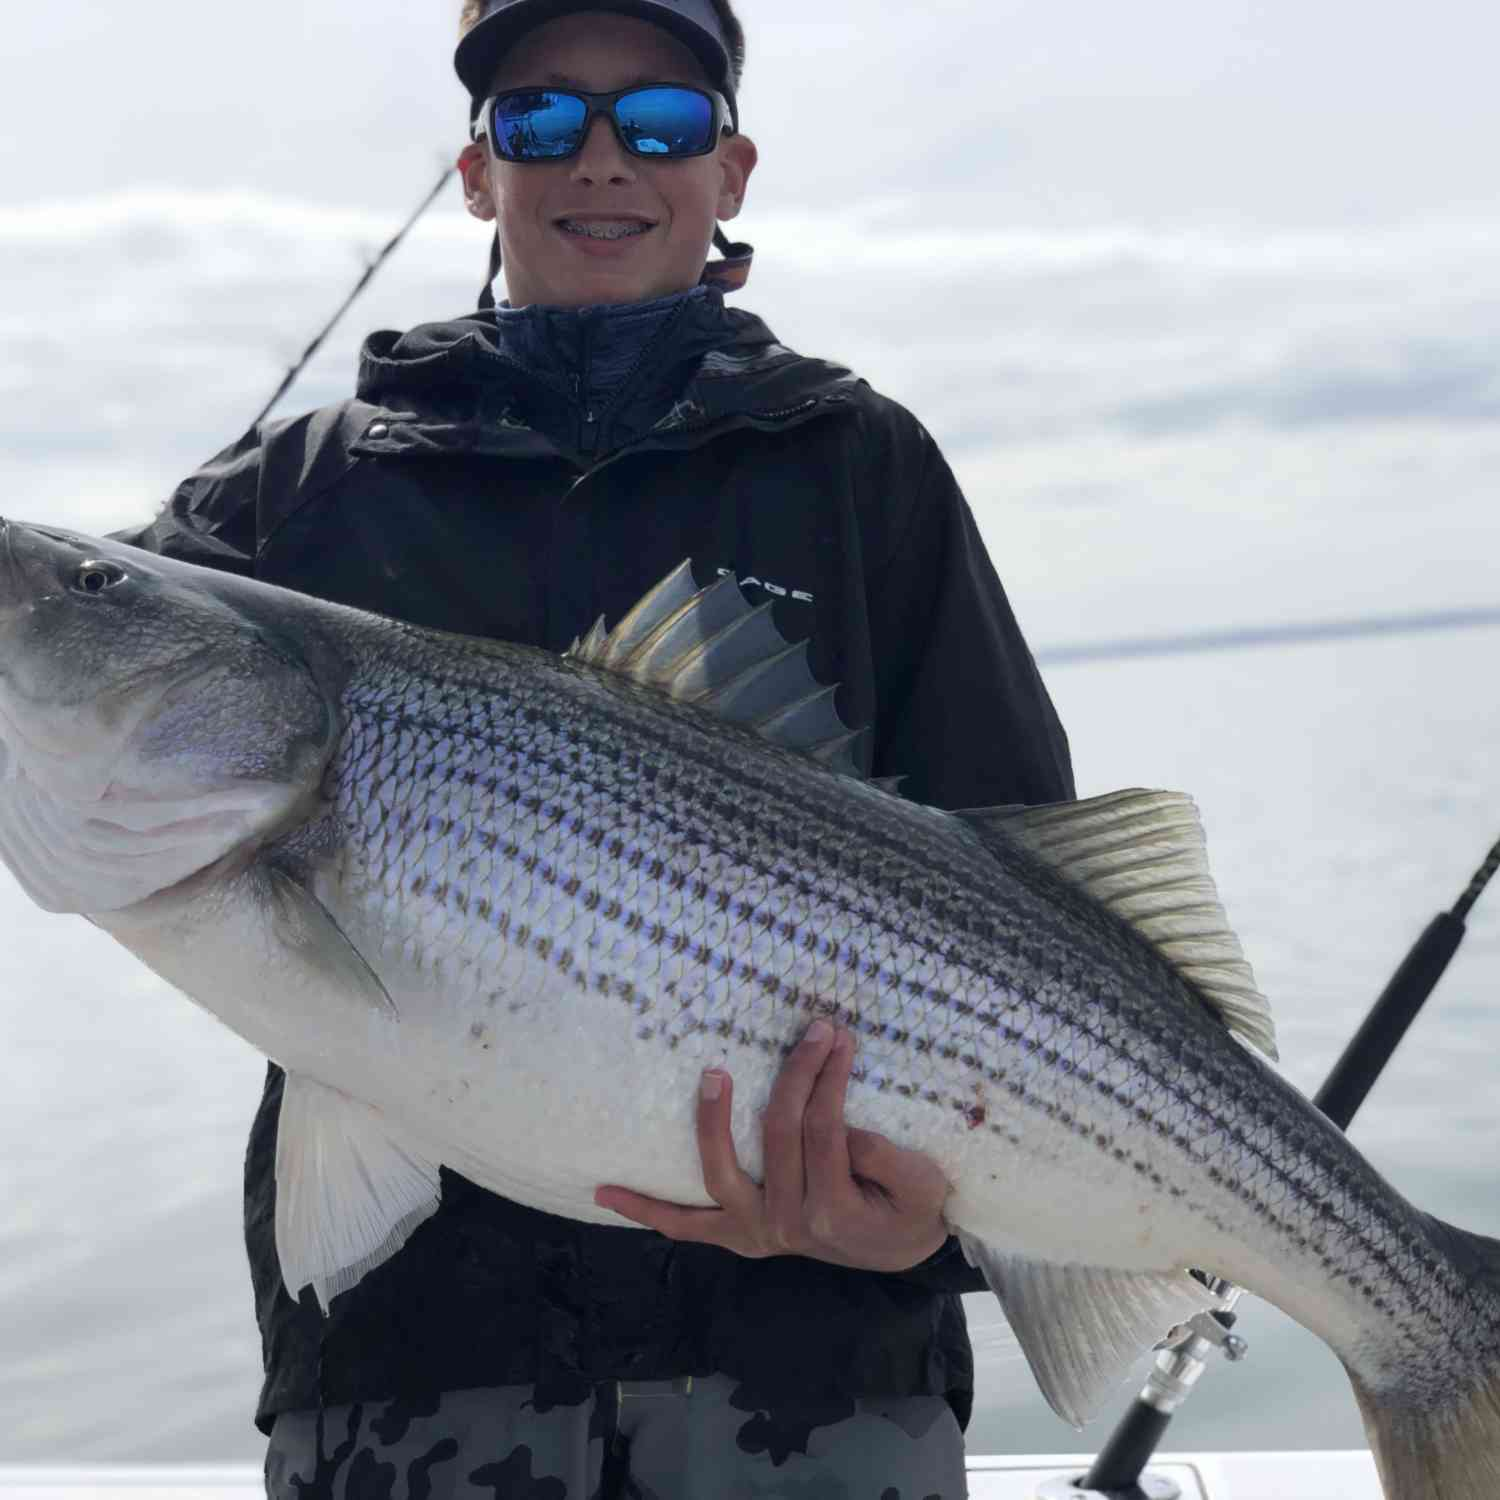 Title: Giant Rockfish in the Chesapeake Bay! - On board their Sportsman Open 252 Center Console - Location: Maryland. Participating in the Photo Contest #SportsmanApril2020